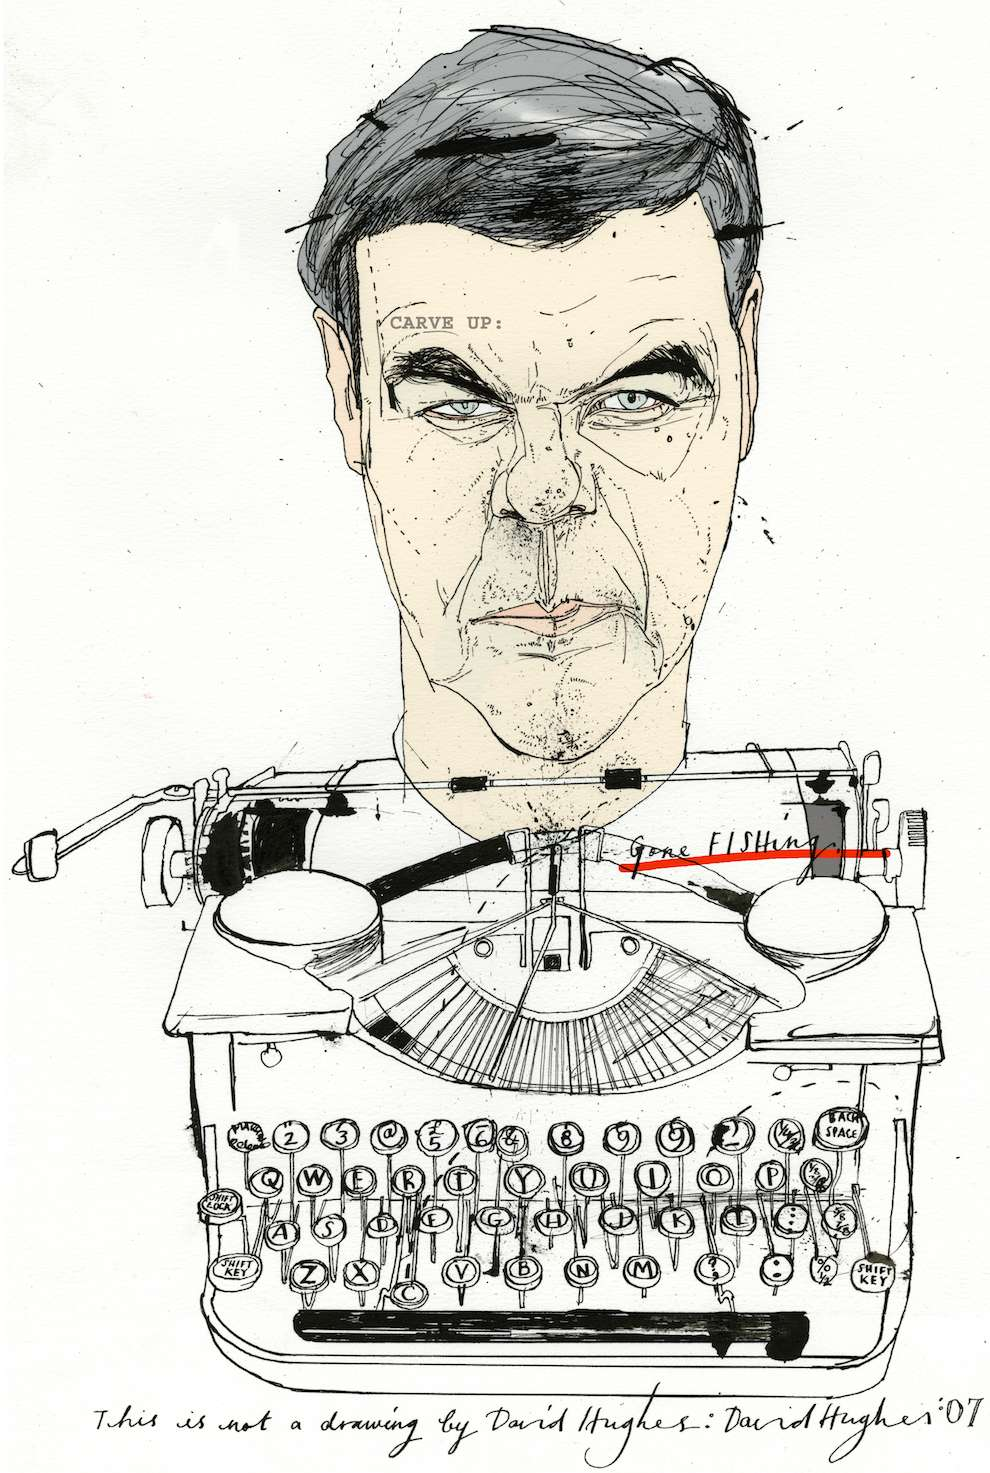 David Hughes, Caricatural portrait of a man's face on a typewriter. Line art sketch illustration